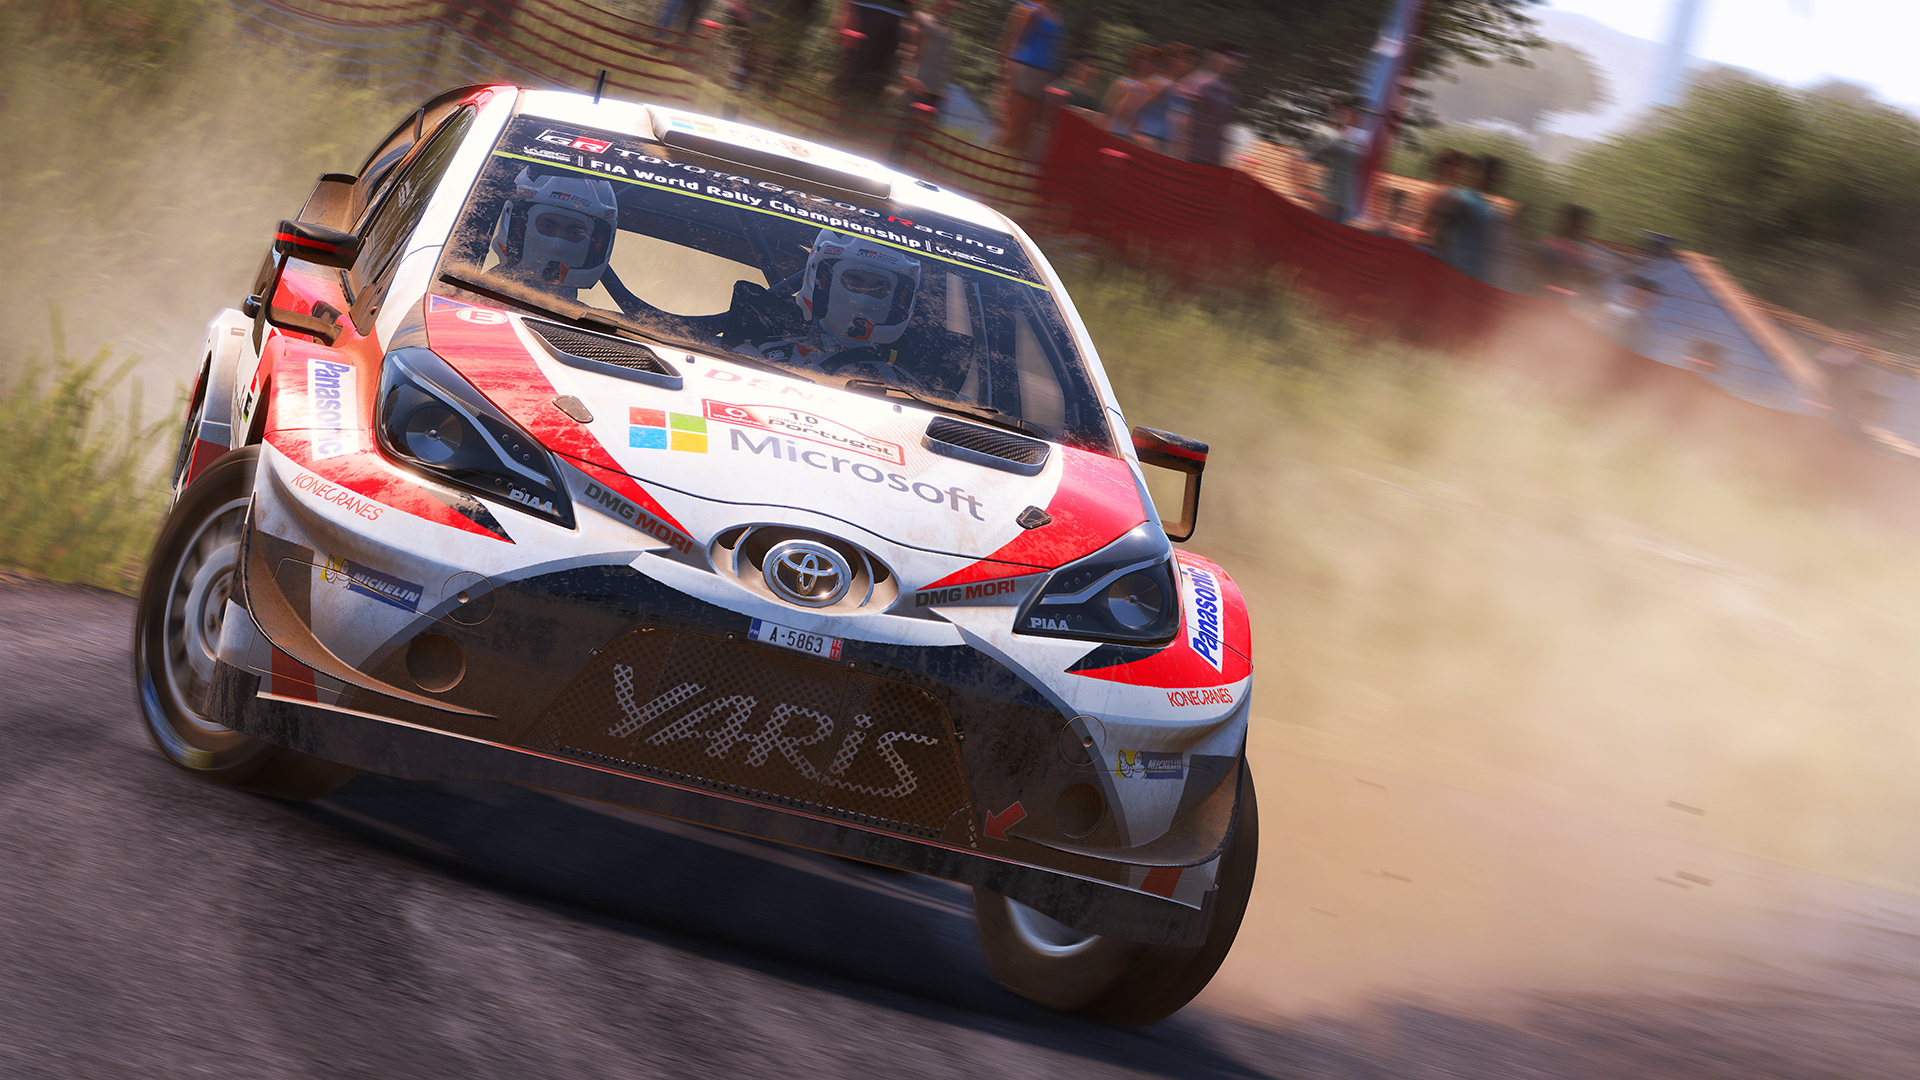 Wrc 7 Fia World Rally Championship For Ps4 Xb1 Pc Reviews Opencritic Sony 6